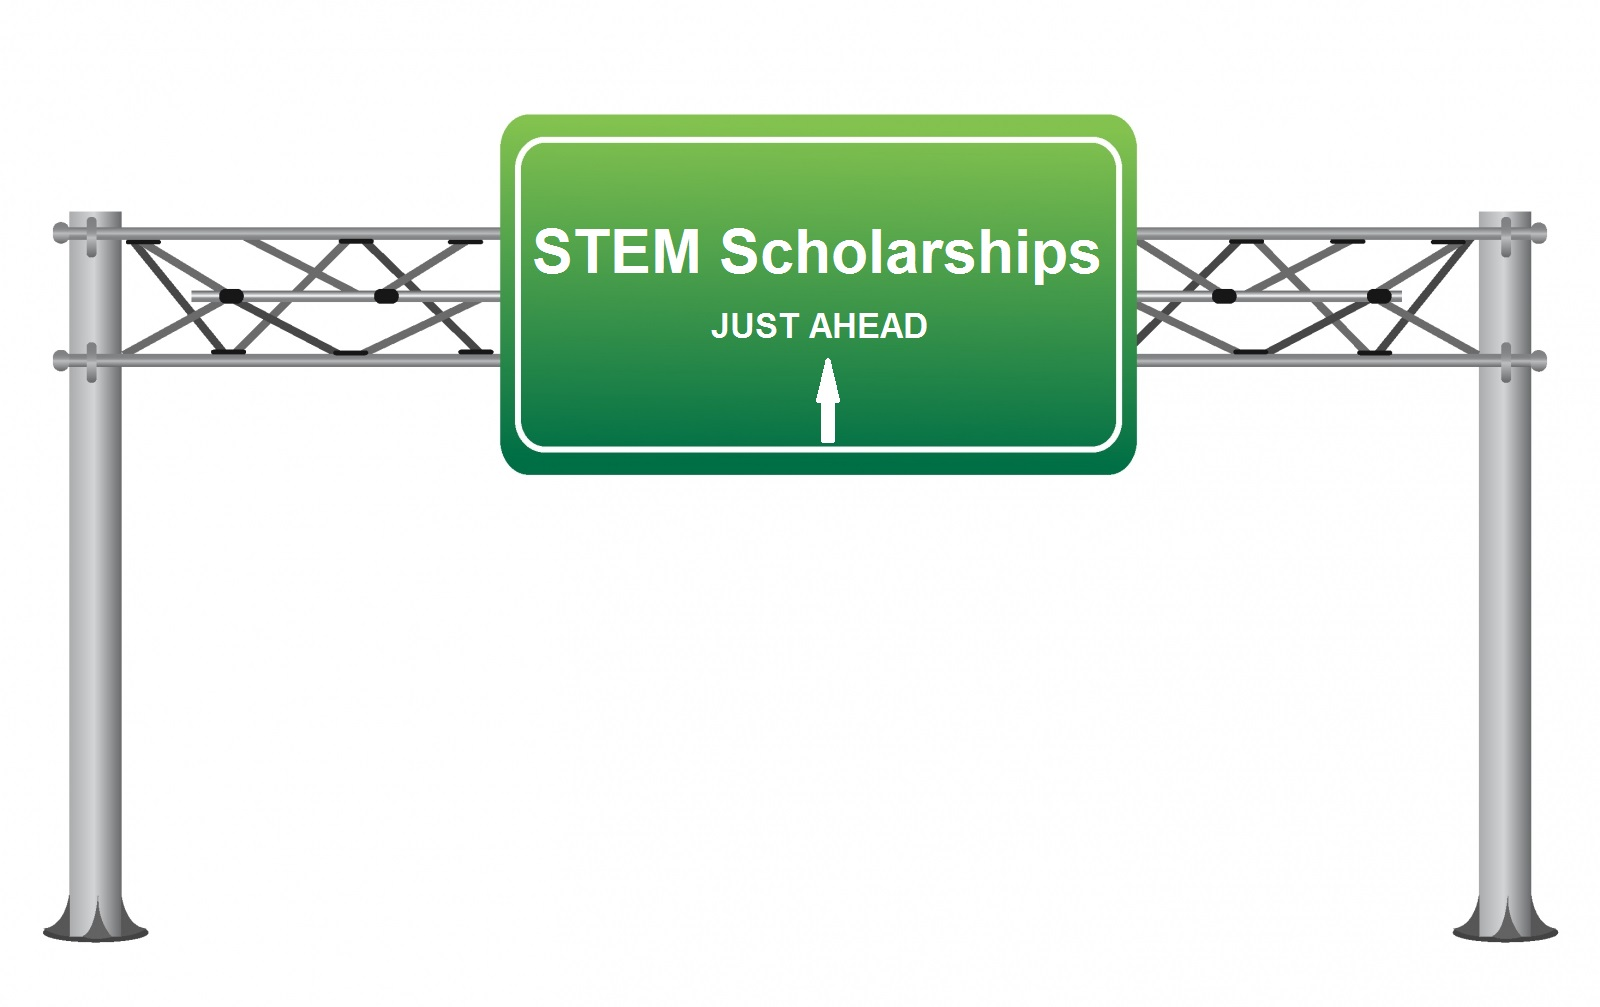 stem scholarship The t-stem scholarship is a $1,450 scholarship available to students who meet certain criteria find out more about the scholarship and if you qualify.